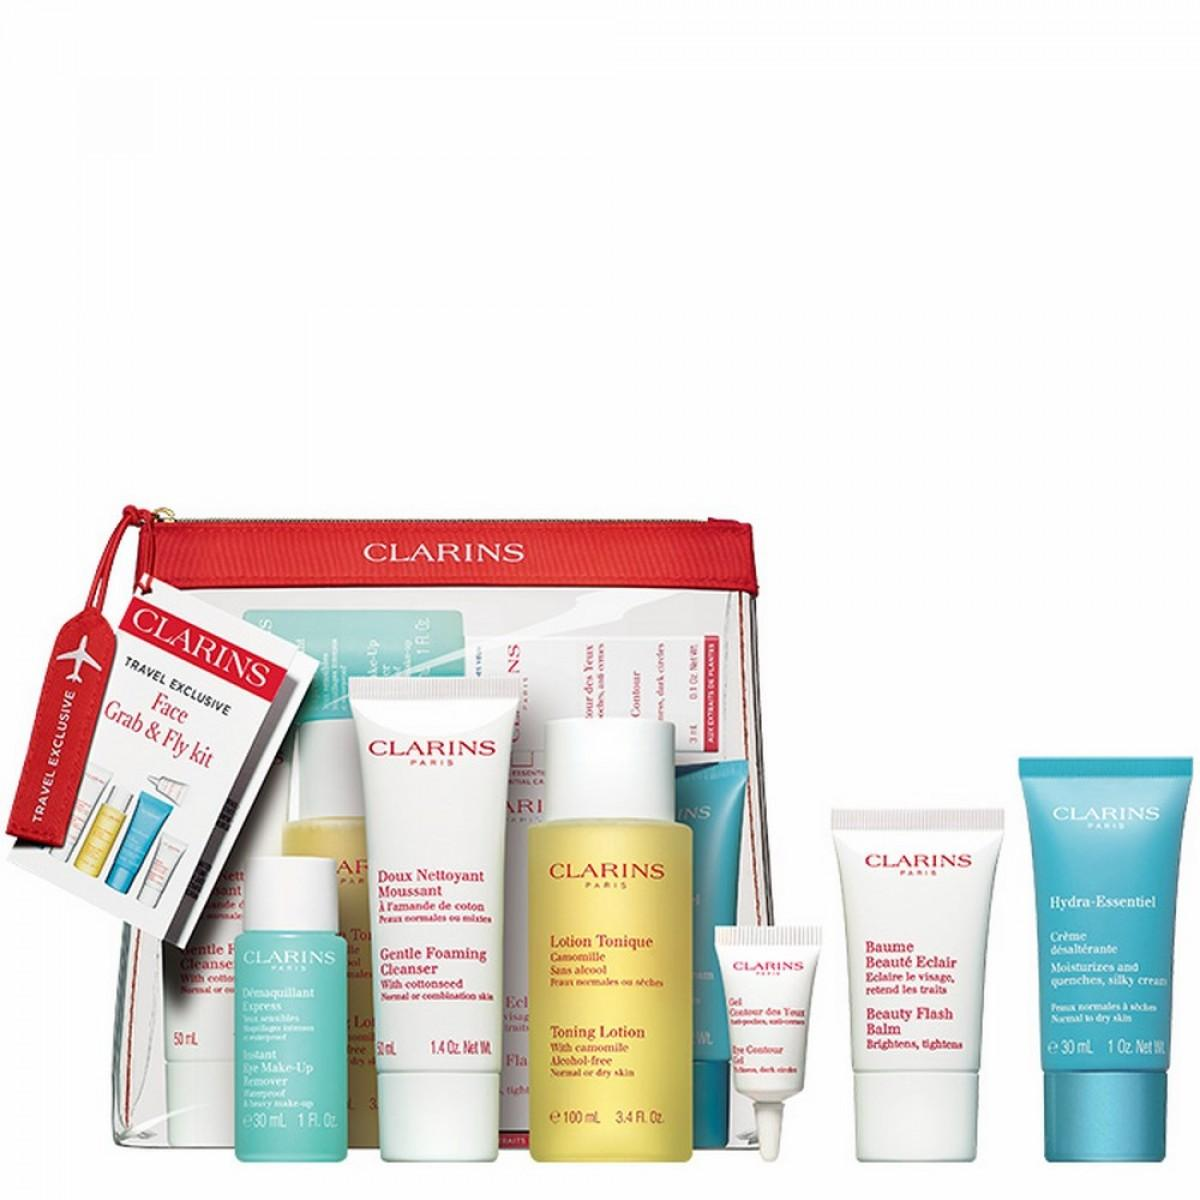 Face Grab Fly Kit Aelia Duty Free Clarins Hydraquench Cream Gel Normal To Combination Skin 15ml